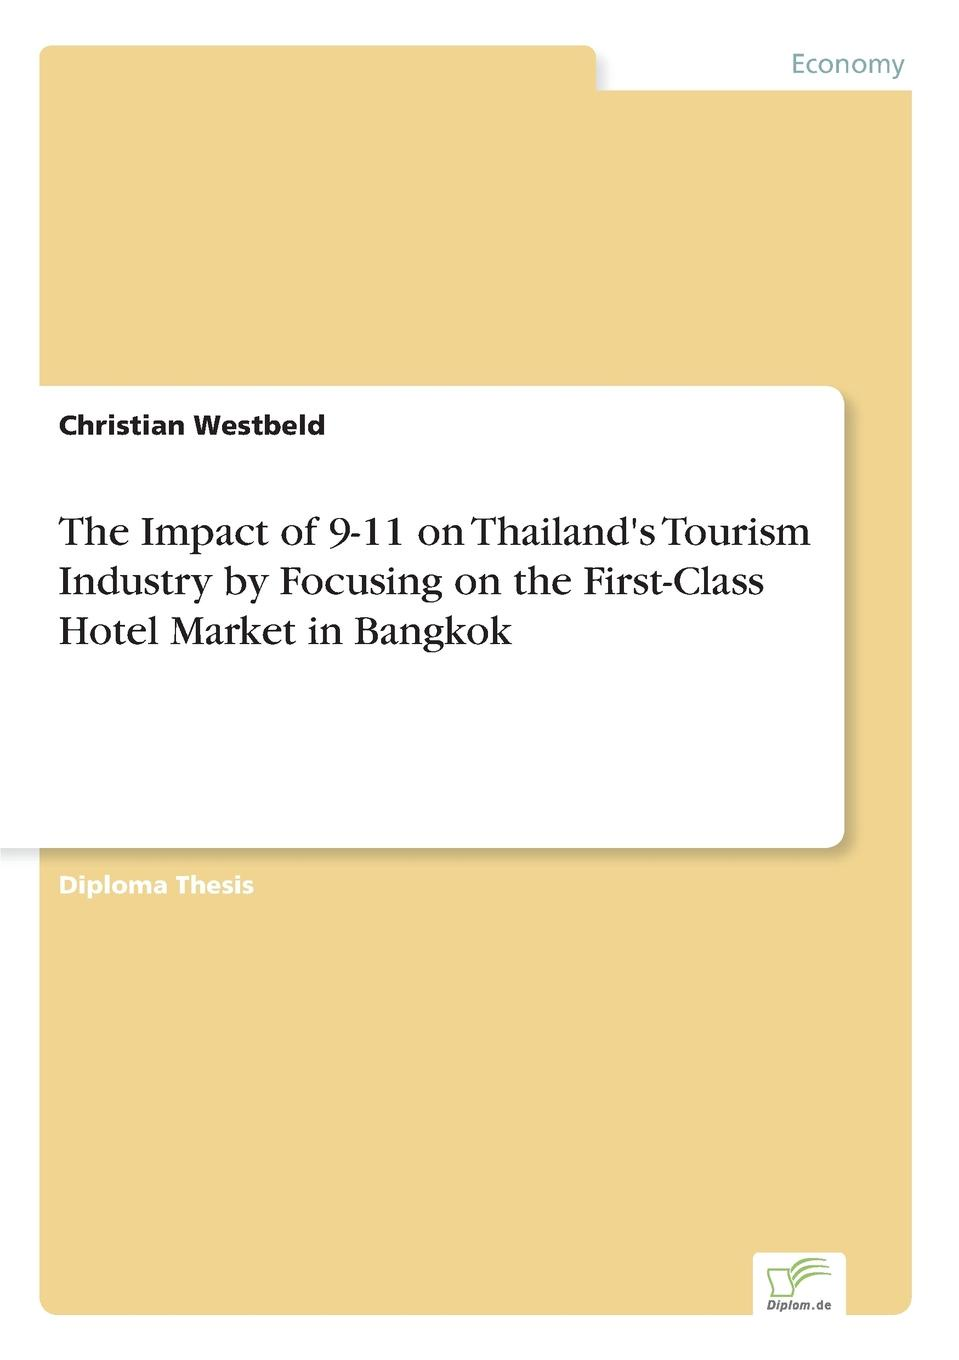 Christian Westbeld The Impact of 9-11 on Thailand.s Tourism Industry by Focusing on the First-Class Hotel Market in Bangkok